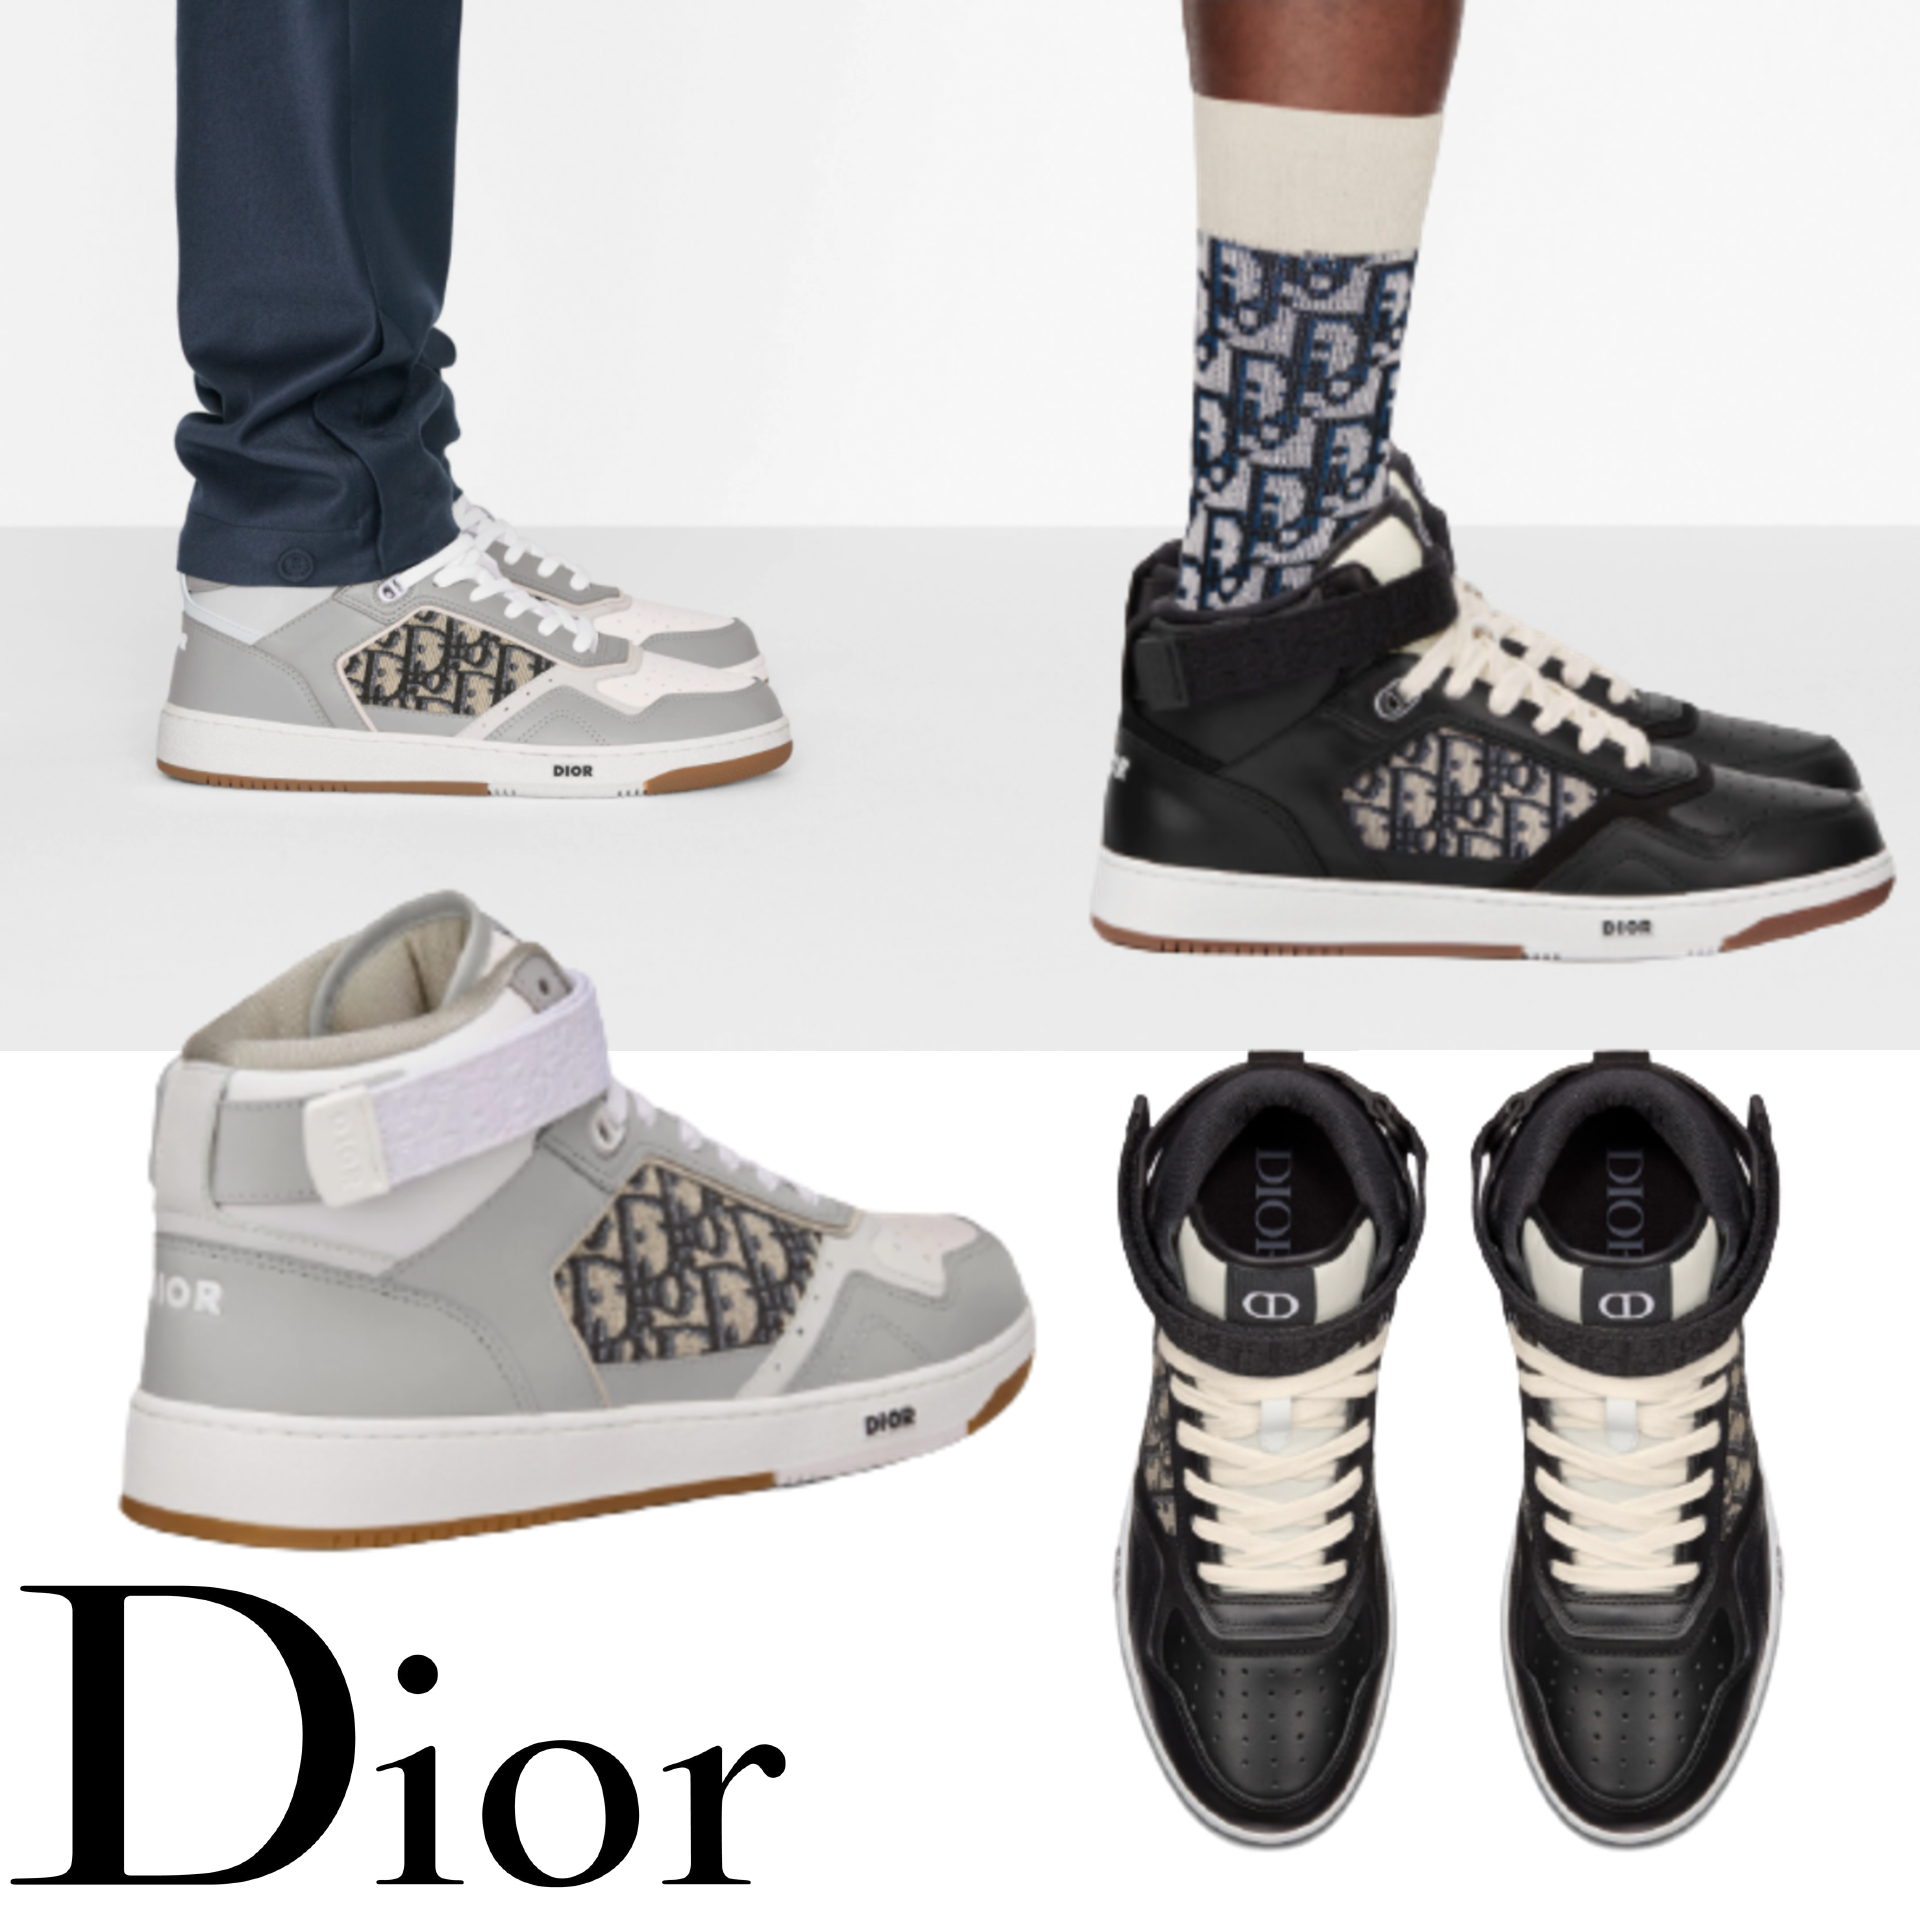 ◆NEW IN◆ DIOR B27 ハイトップ スニーカー 白 黒 シューズ (Dior/スニーカー) 3SH132ZIR_H165  3SH132ZIR_H965